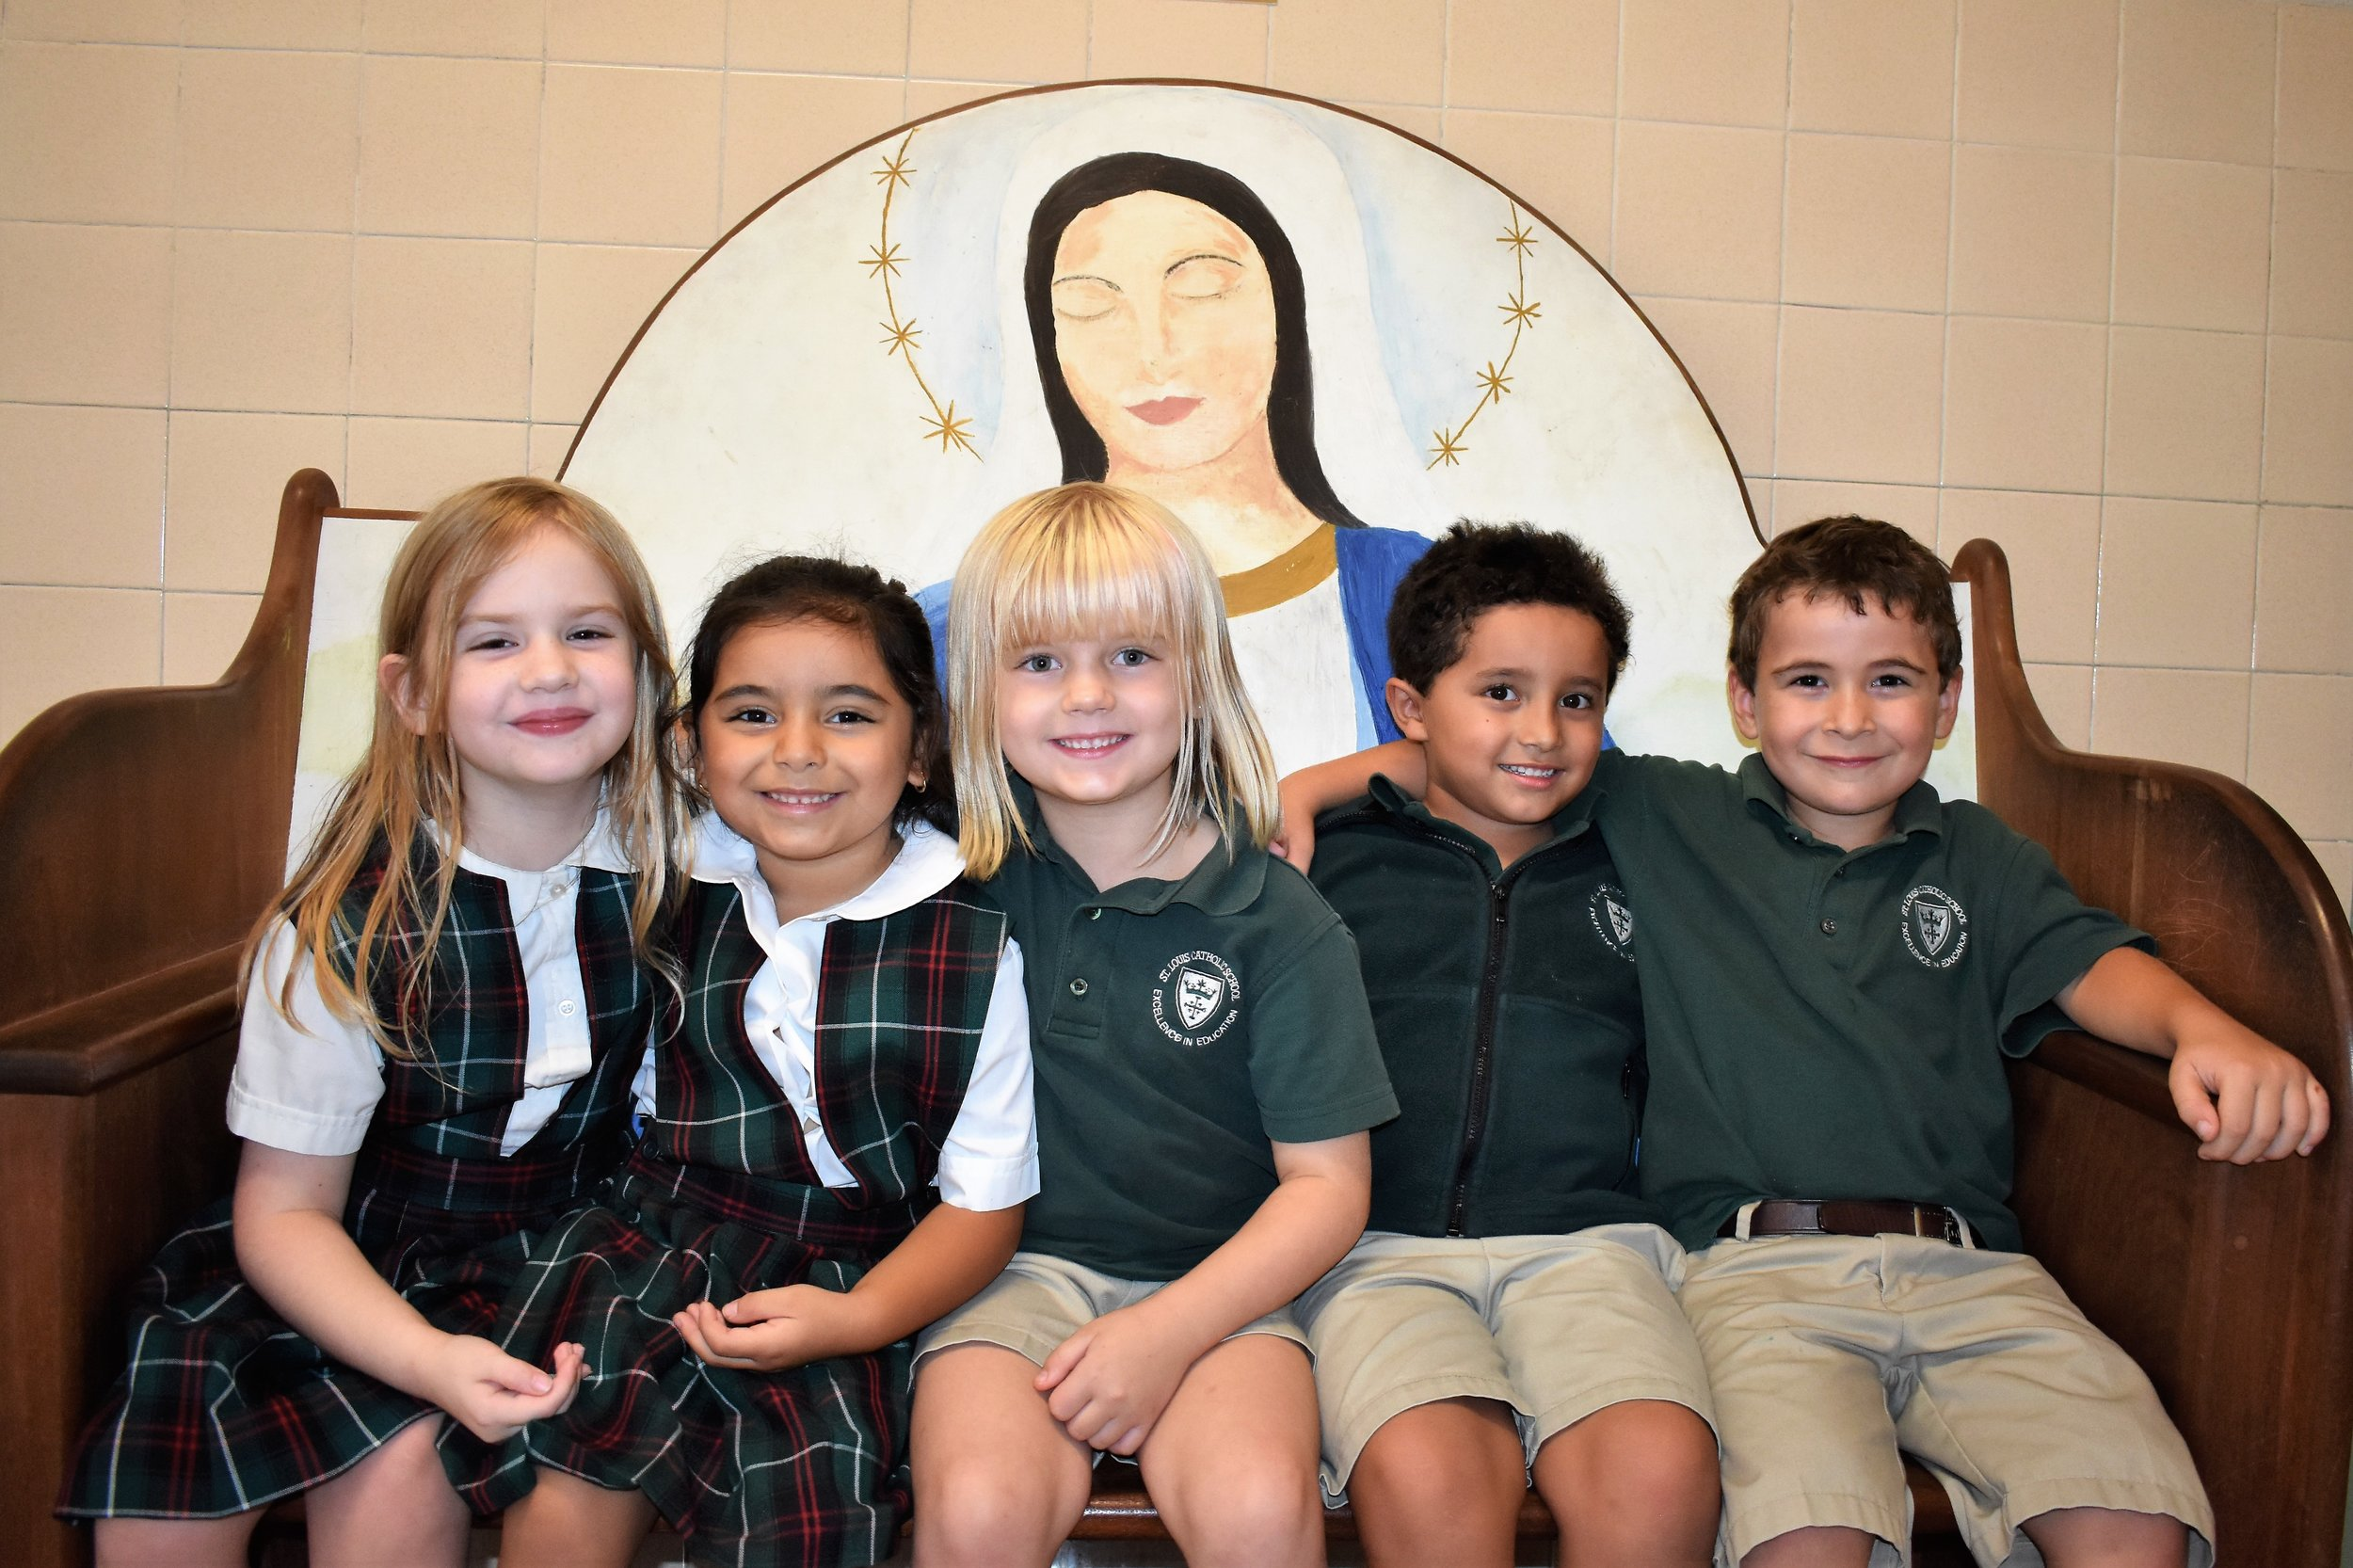 Financial Aid - It is our goal at SLCS to provide our Catholic Education to any family who desires it. This is why we strive to partner with individuals and foundations to help make tuition affordable.Request Information